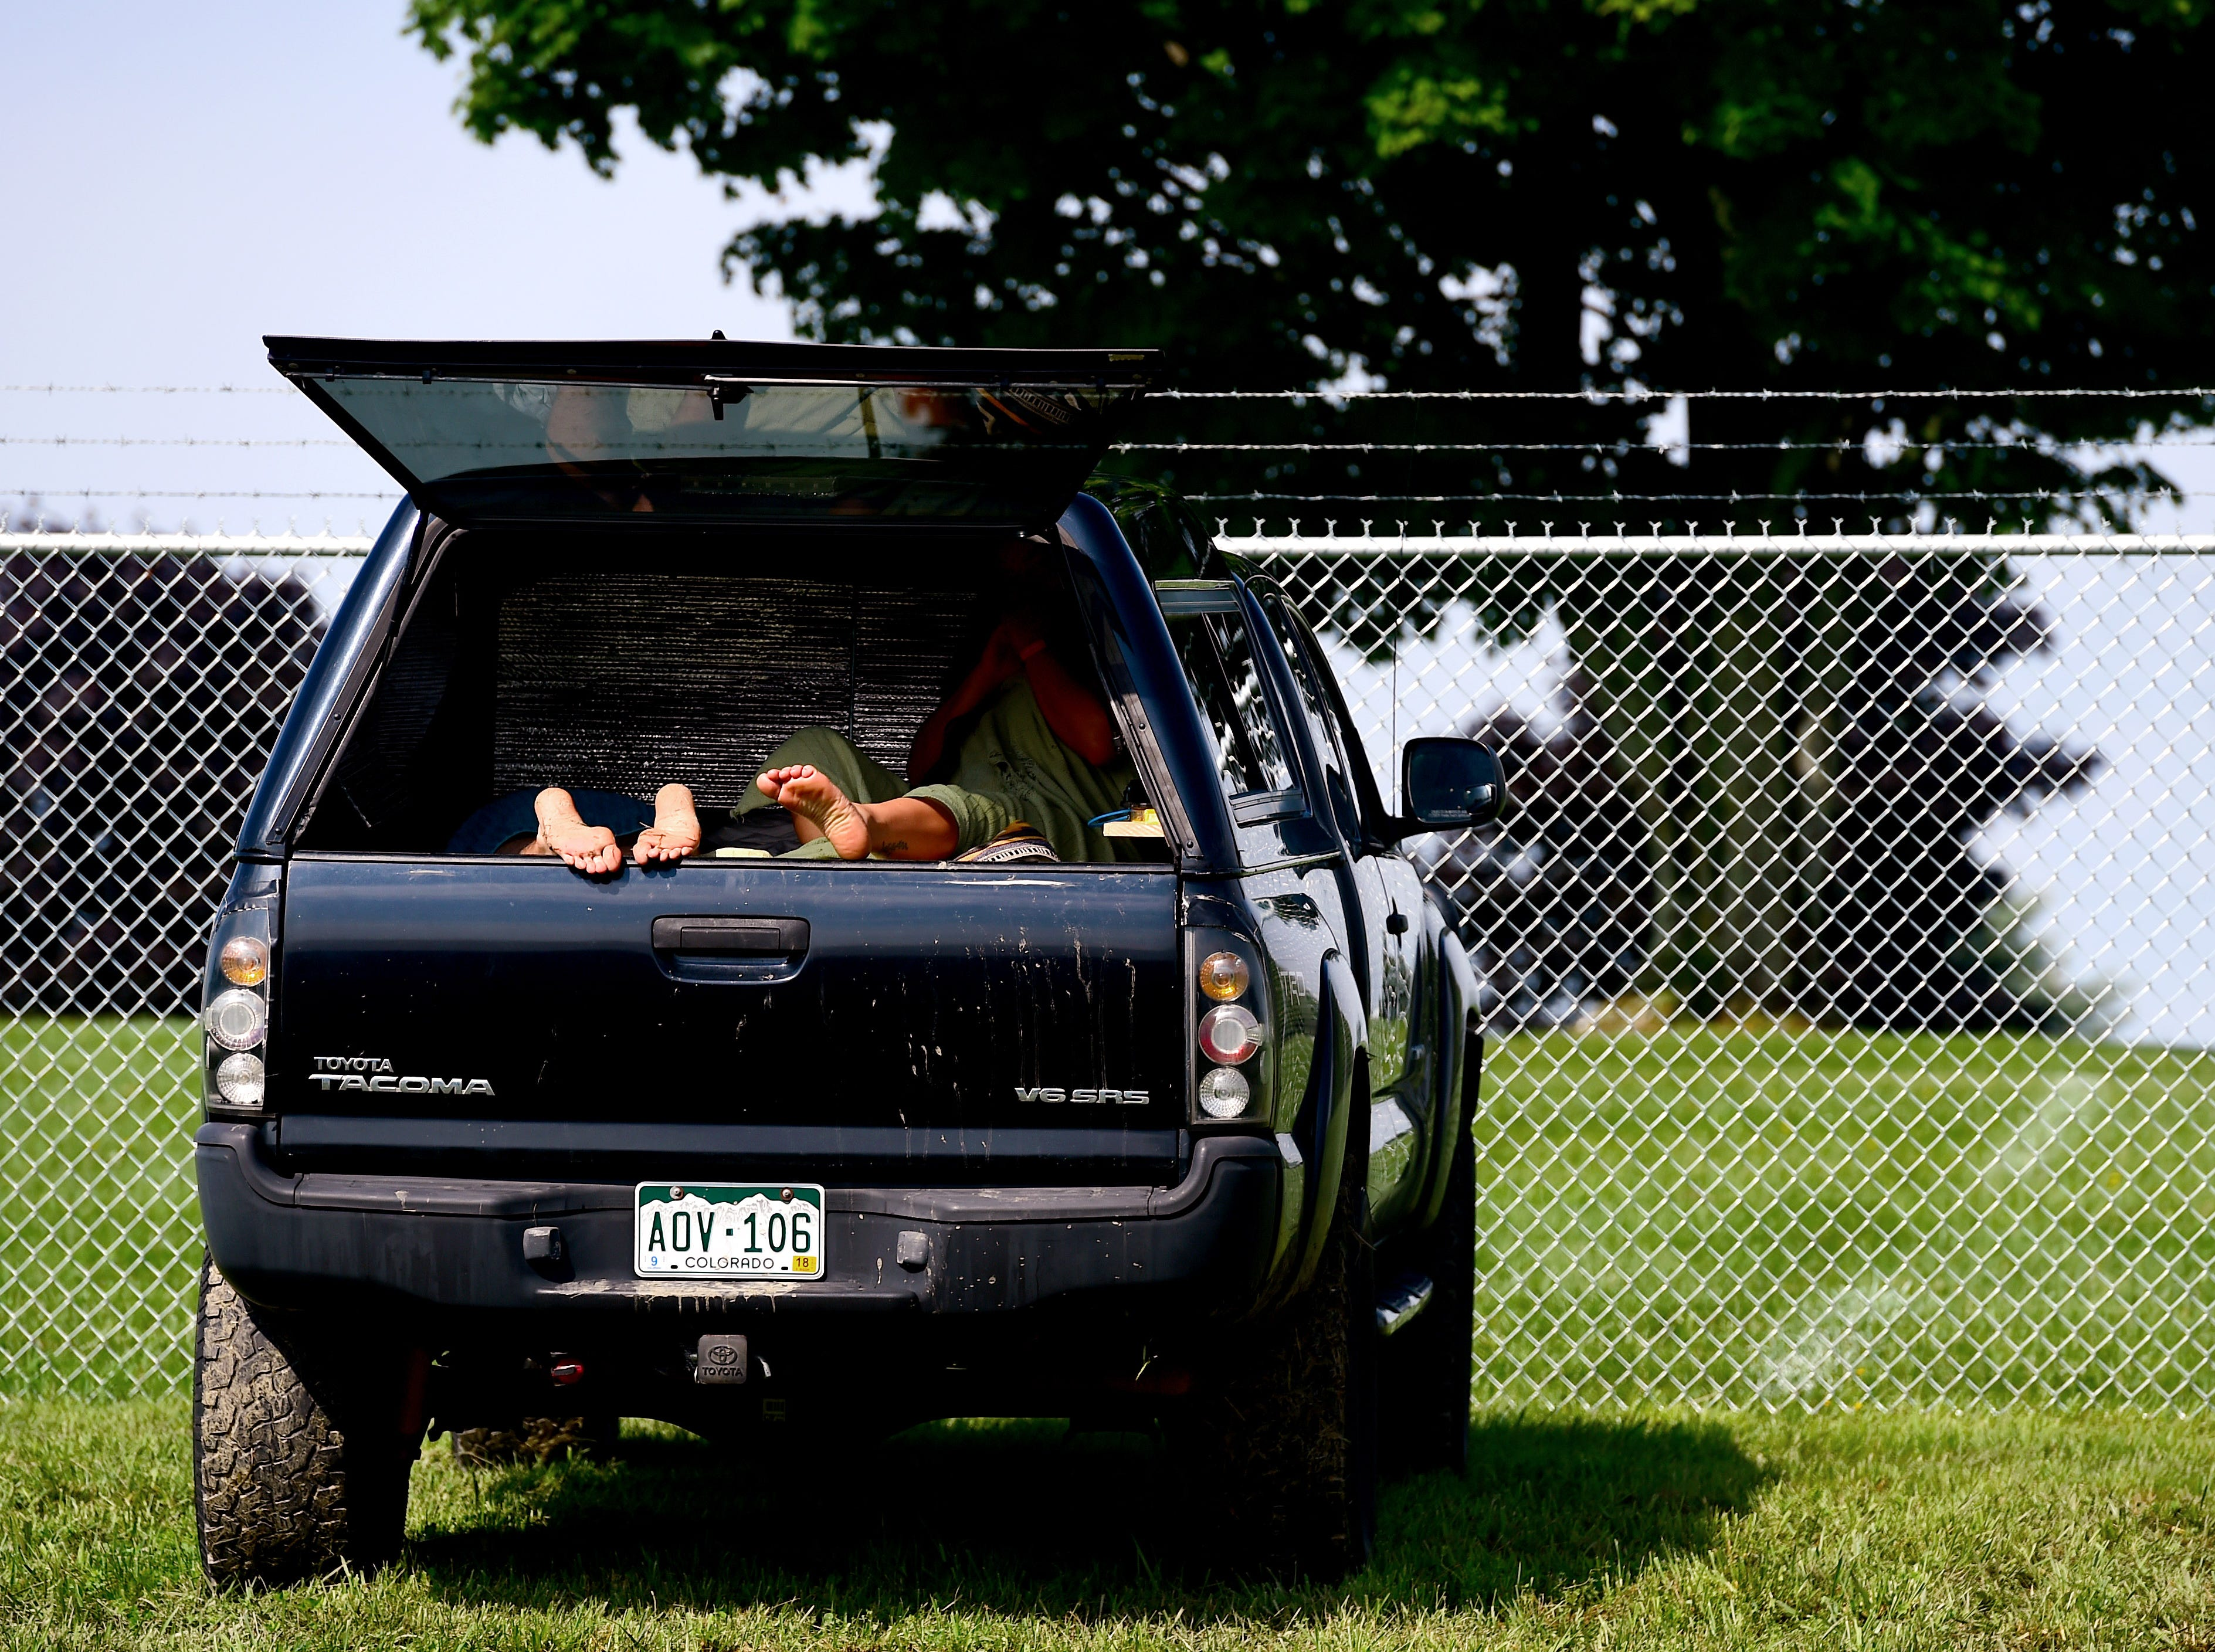 Phish fan Ali Yanni of Portland Maine (in truck, with her boyfriend) arrived at Watkins Glen after the gates were closed early Thursday night following the announcement that the three-day Curveball Festival was cancelled due to water quality issues on the site. The couple, who camped outside the gates, was meeting friends at the festival, some who traveled from South Carolina, Colorado and California. Friday, August 17, 2018.